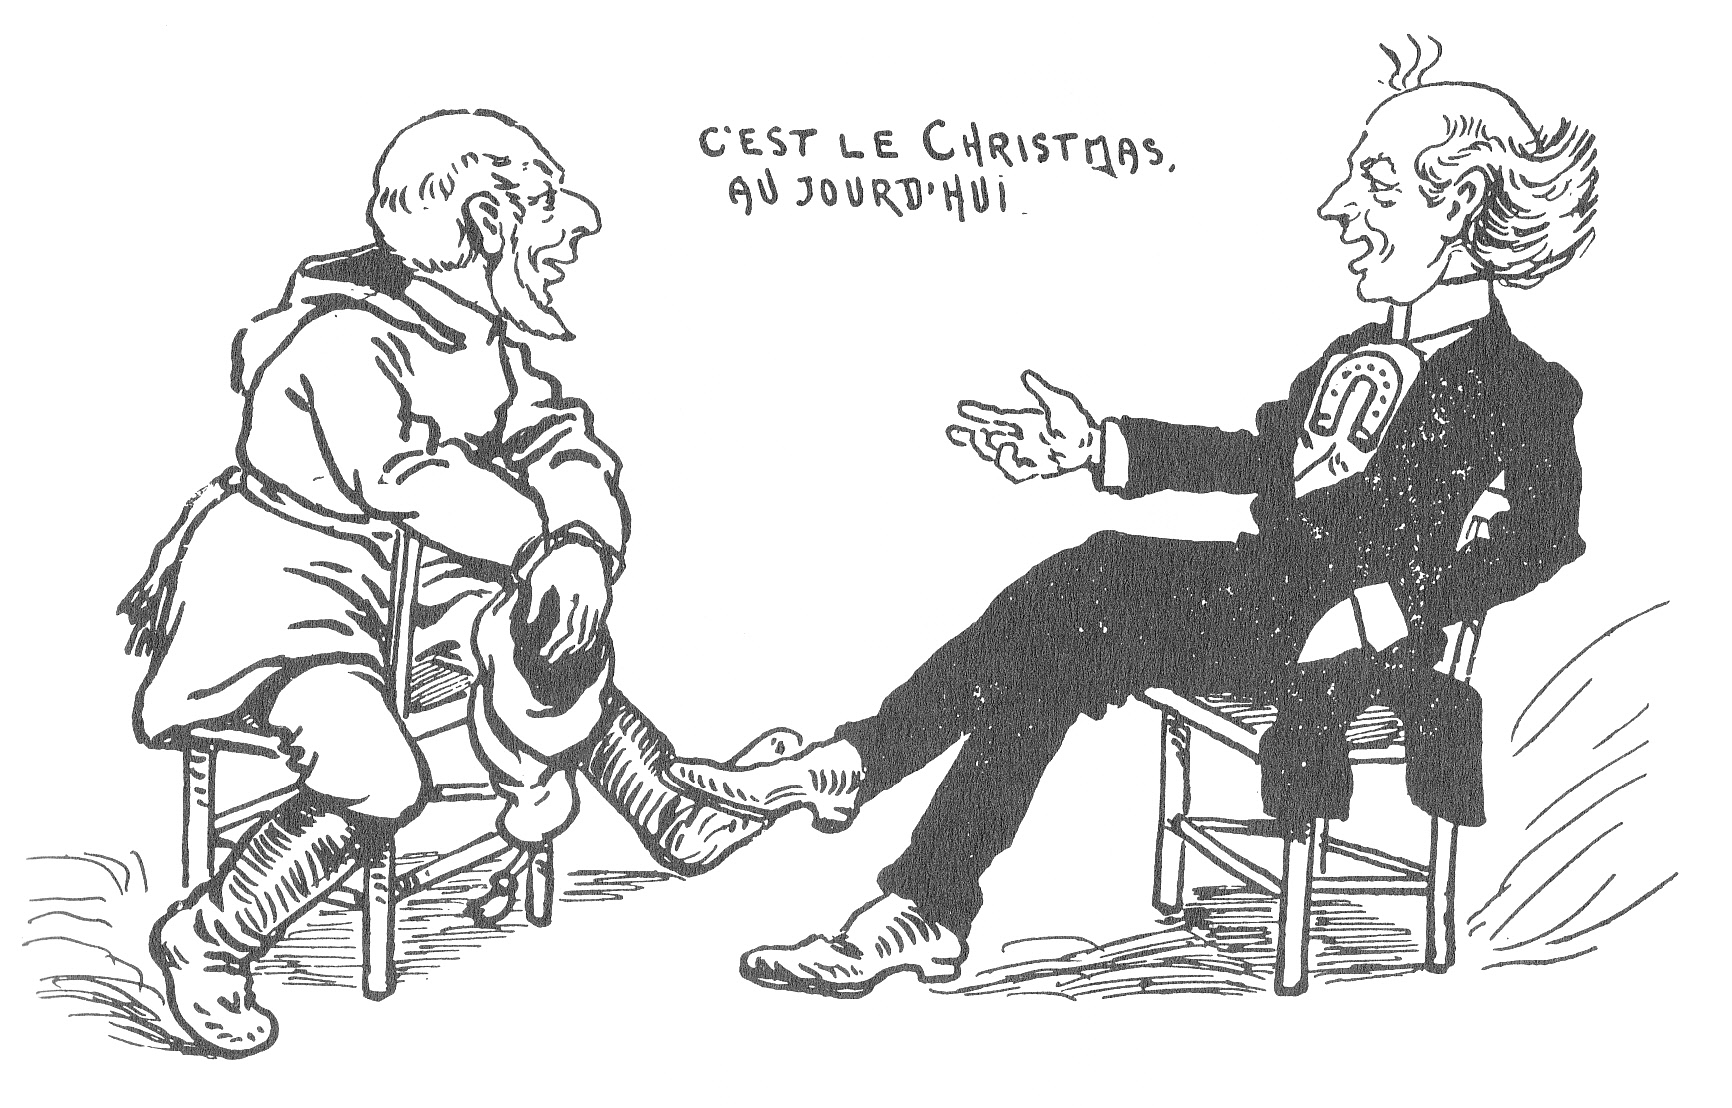 C:\Users\Robert\Documents\CARTOONING ILLUSTRATION ANIMATION\IMAGE CARTOON\IMAGE CARTOON L\PERE LADEBAUCHE, Les Voyages de Ladebauche, 97.jpg